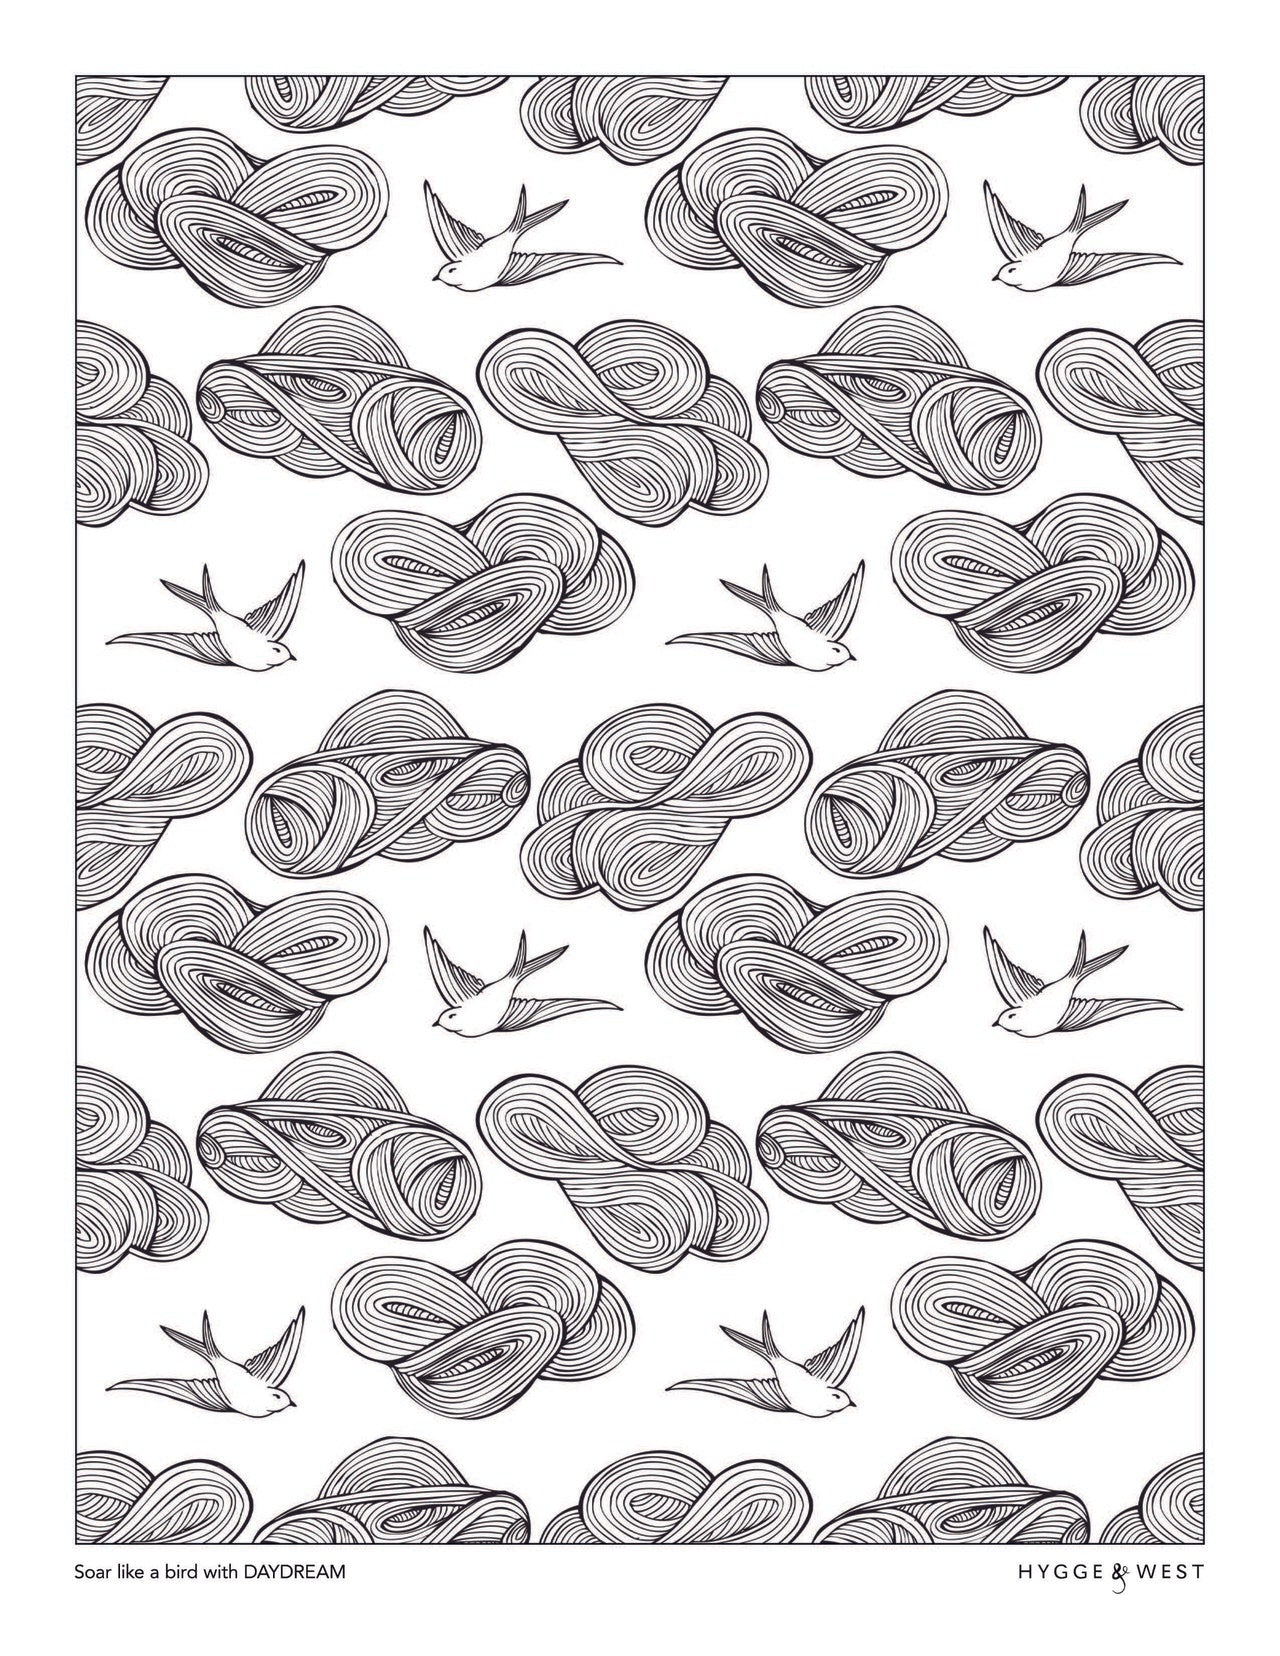 Daydream pattern coloring page | Julia Rothman | modern wallpaper | Hygge & West